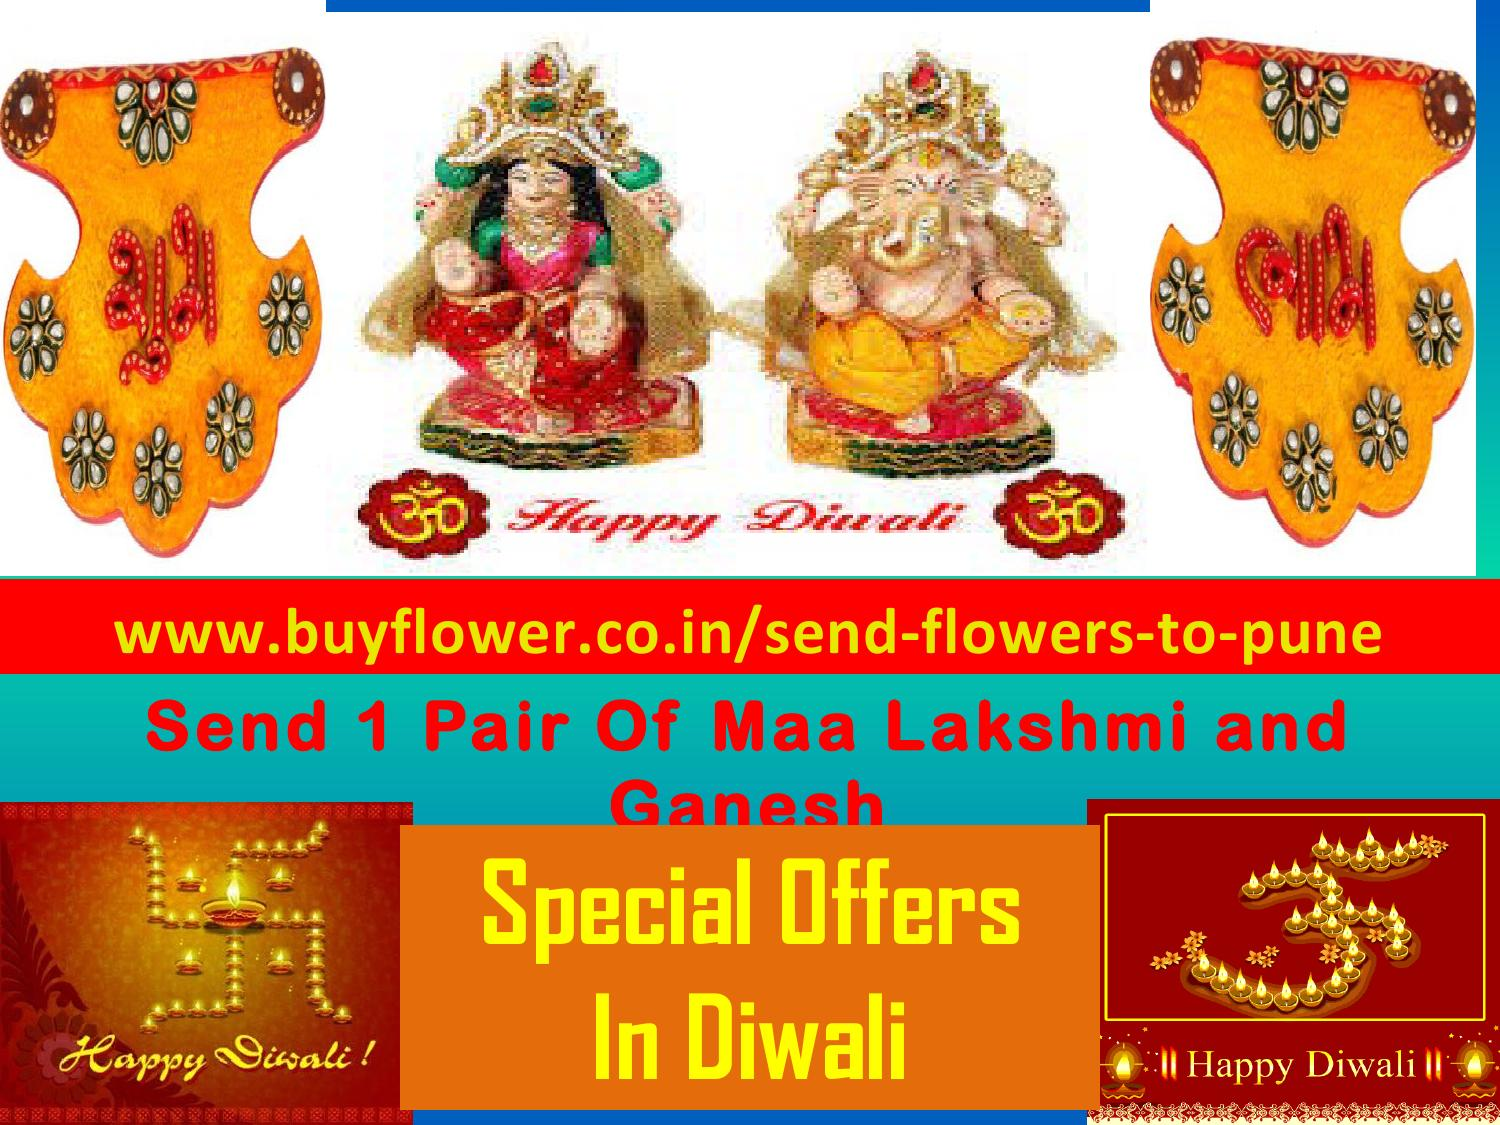 Diwali-special-offers-We-are-x-hours-available-for-send-flowers-to-pune-and-all-over-the-in-wallpaper-wp3604849